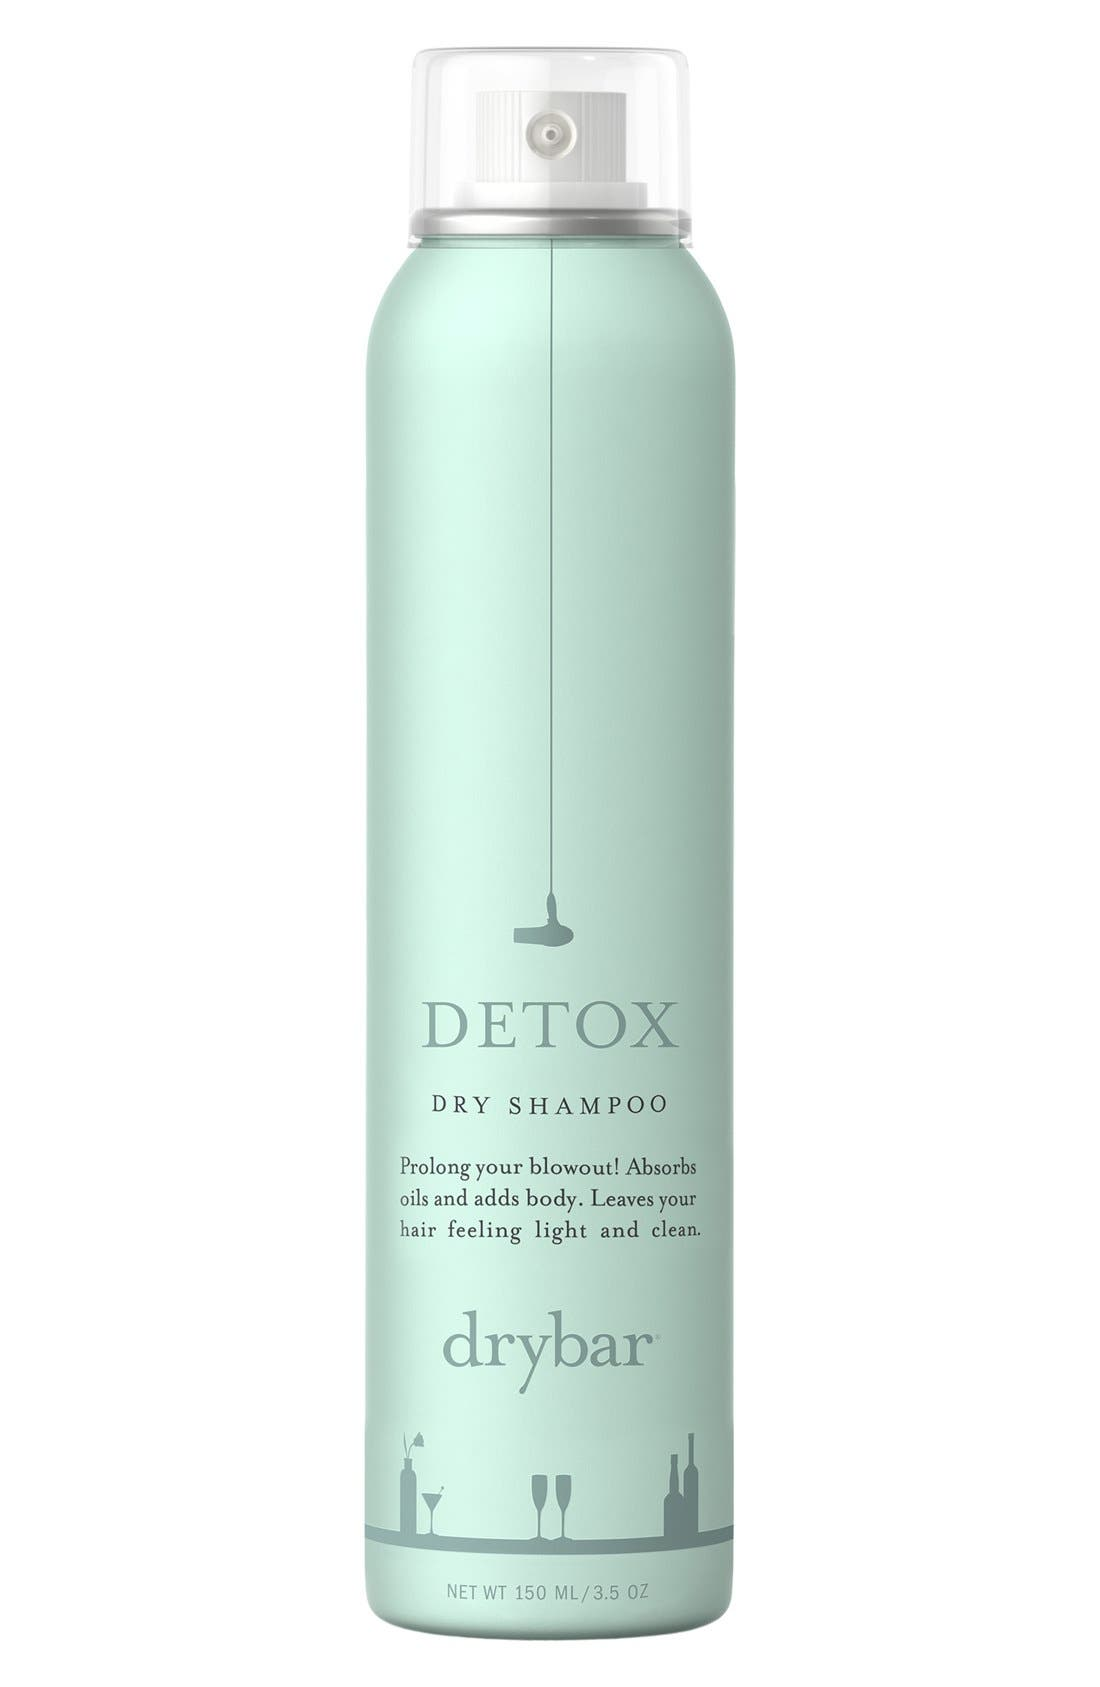 DRYBAR, Detox Dry Shampoo for Brunettes, Alternate thumbnail 3, color, NO COLOR